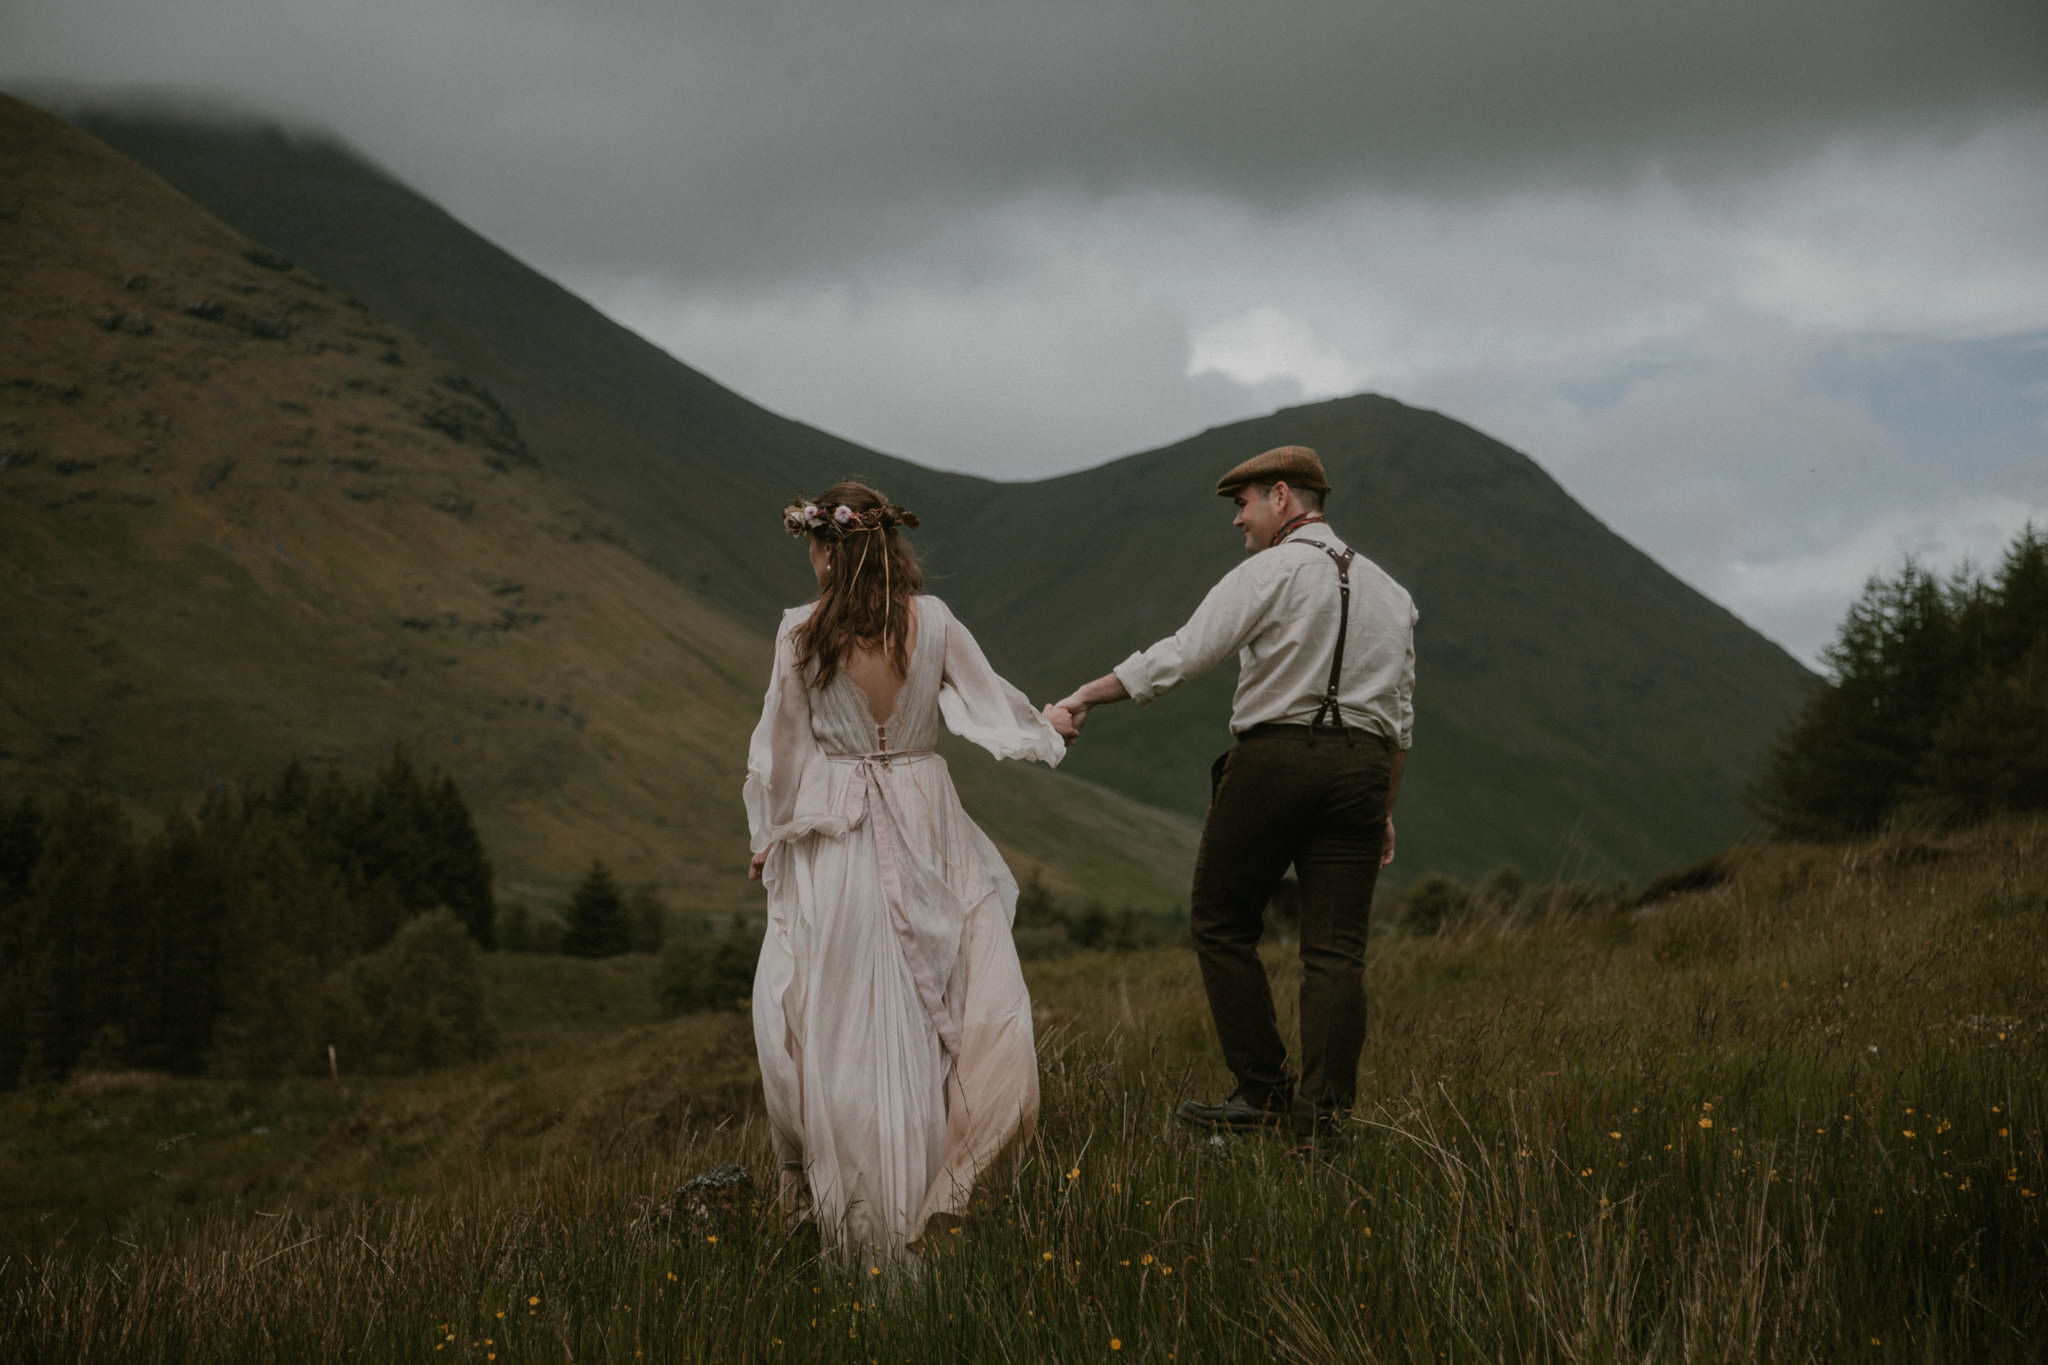 Scottish elopement couple walking away amidst the mountains on the Isle of Mull in Scotland